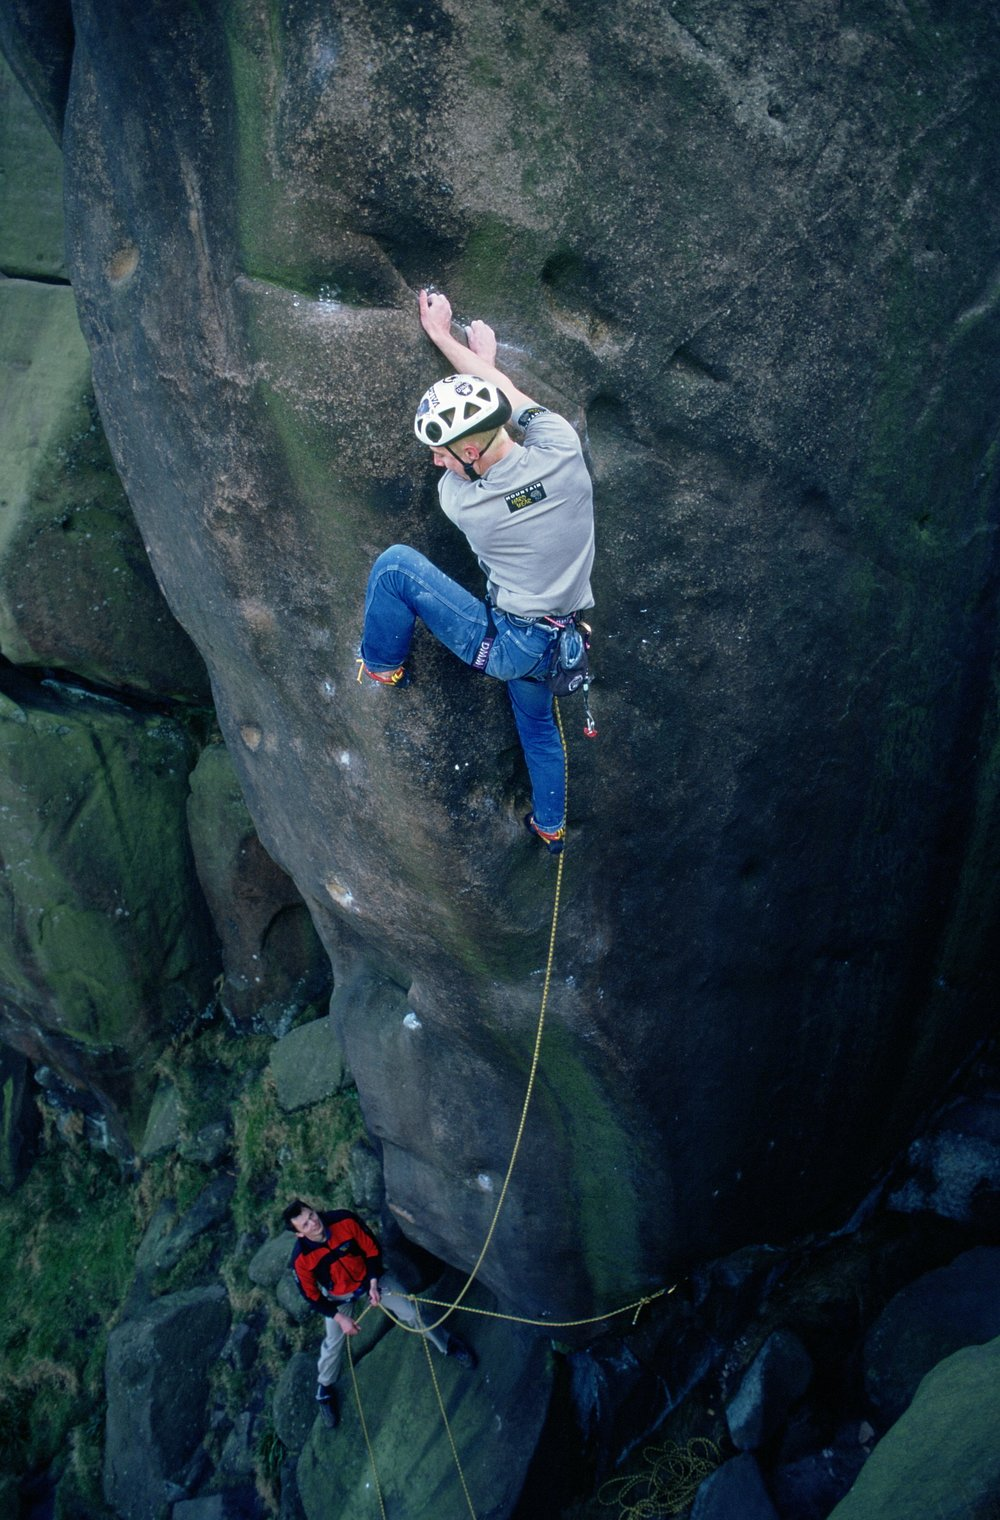 Meshuga E9 6c, Black Rocks, UK. Second ascent in 2000.  Photo: Ray Wood